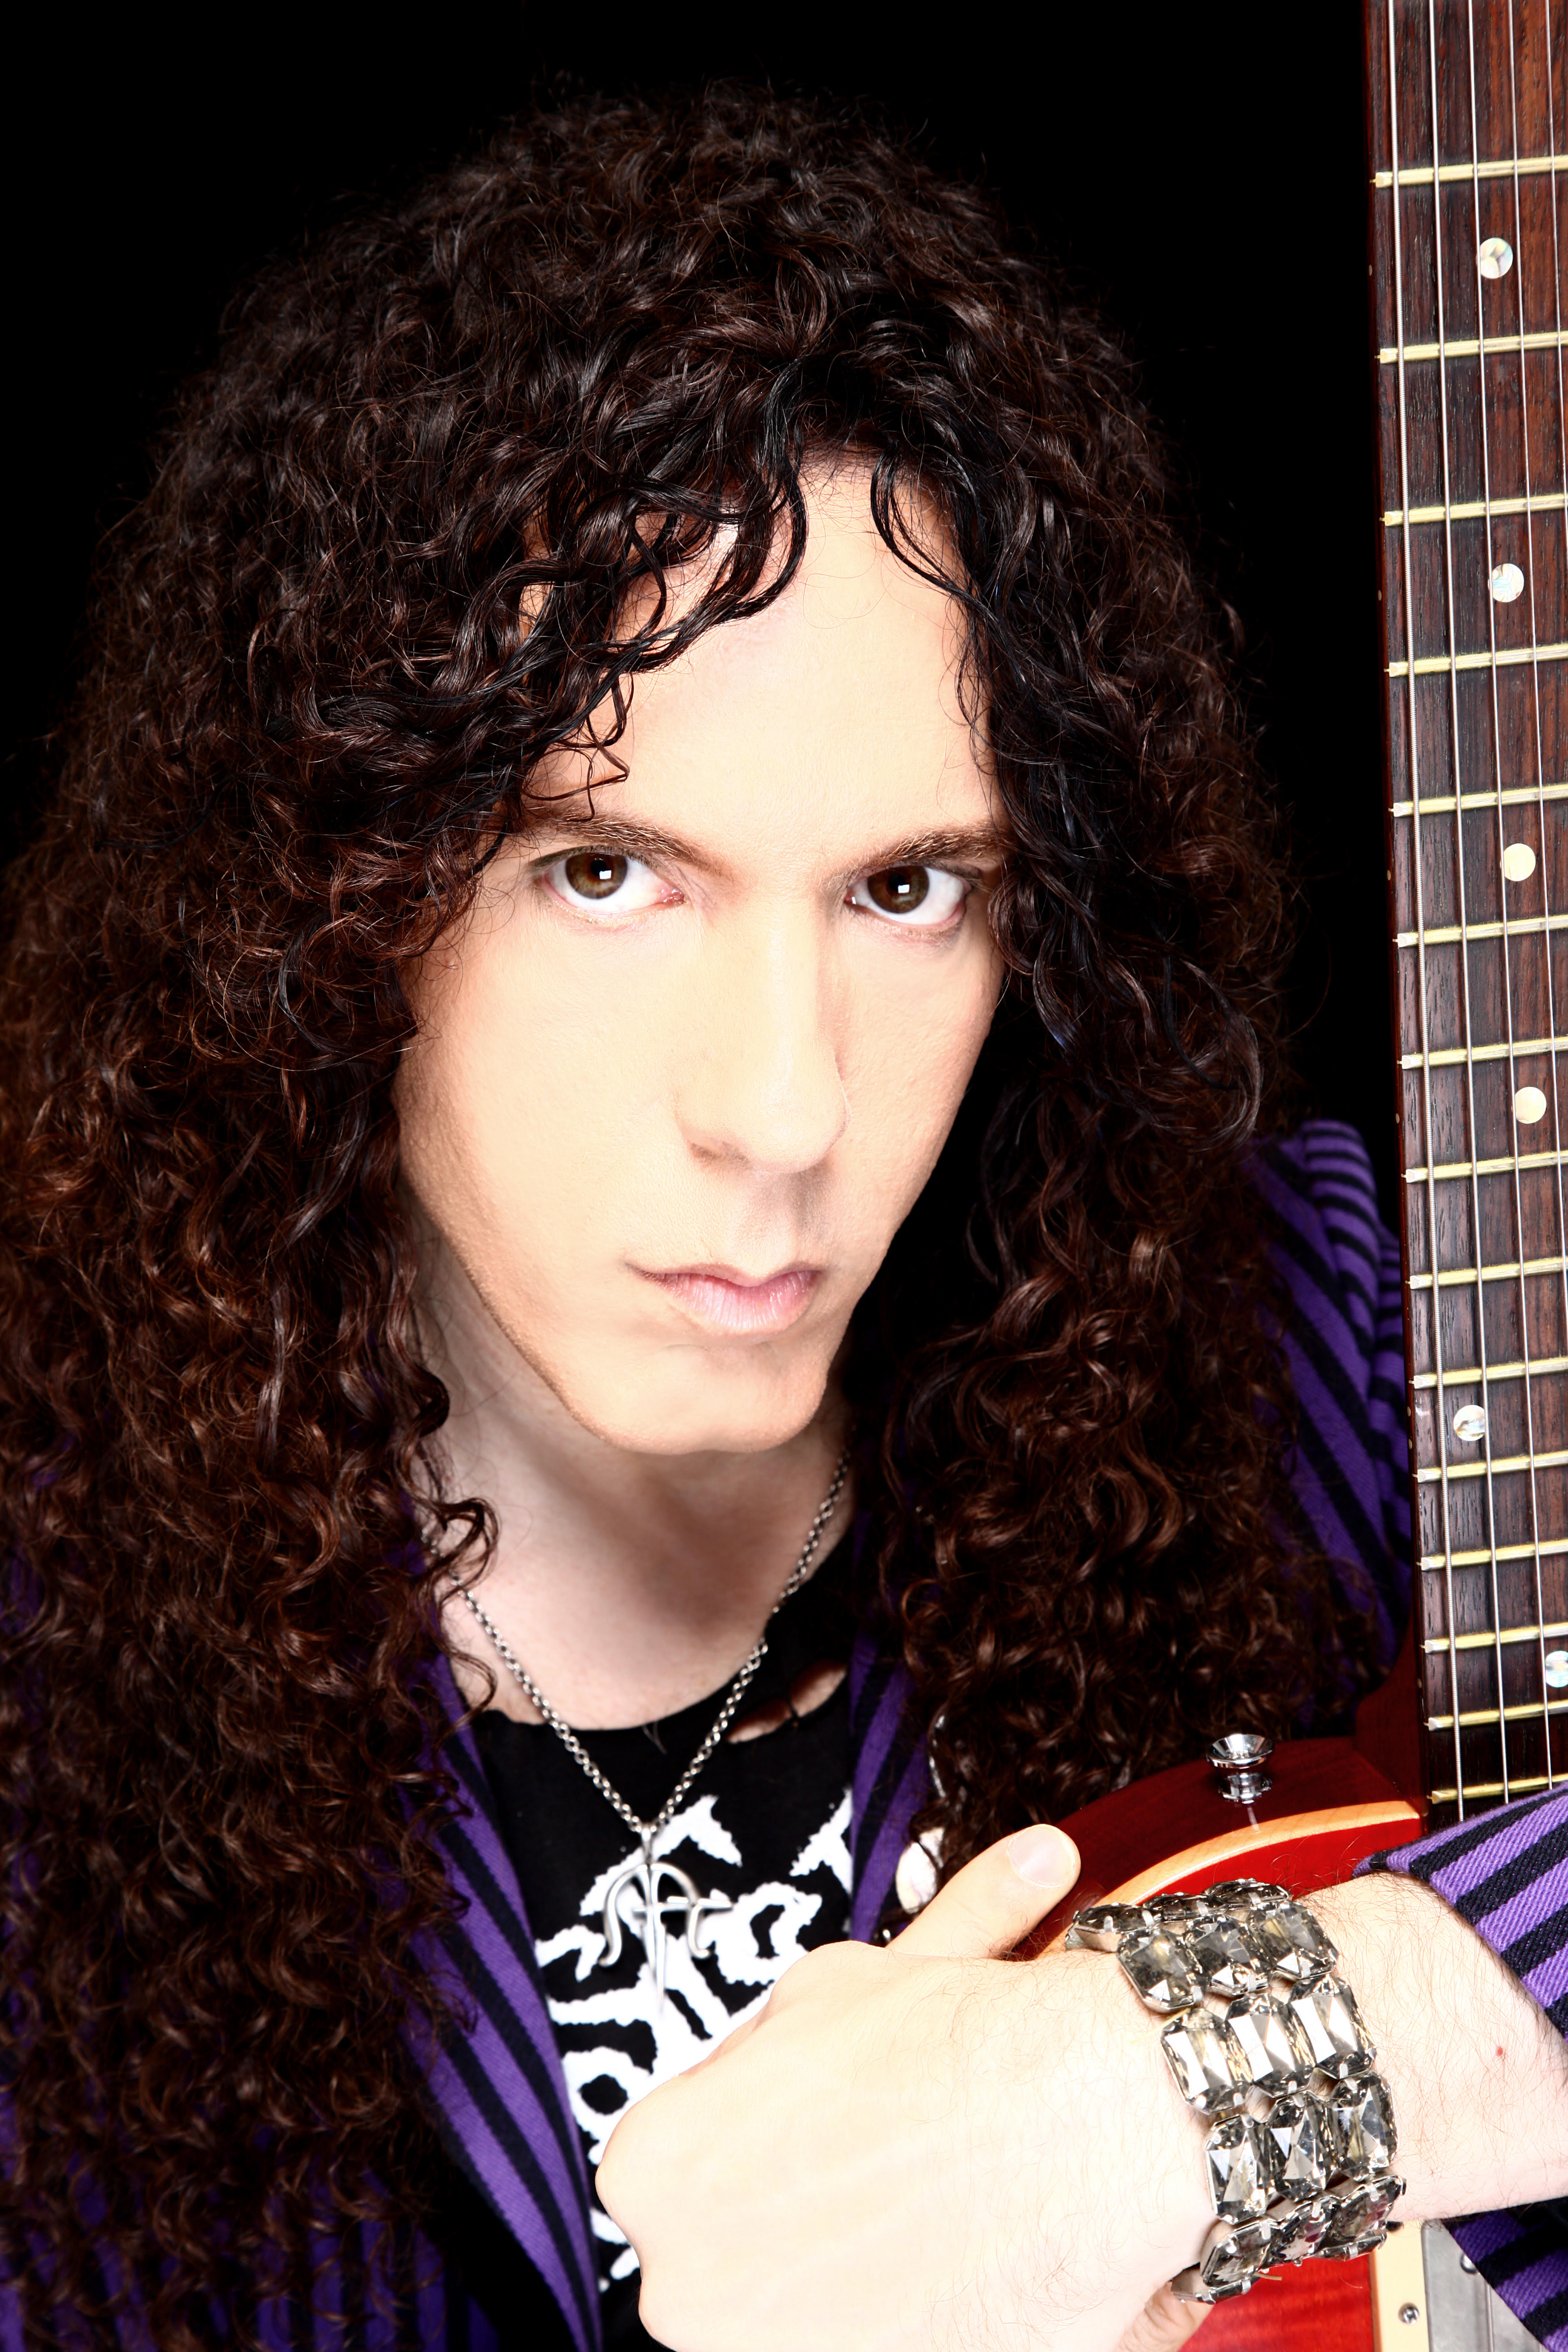 Marty Friedman LIVE Project Vol.3  初夏の宴「Glorious Summer Music」